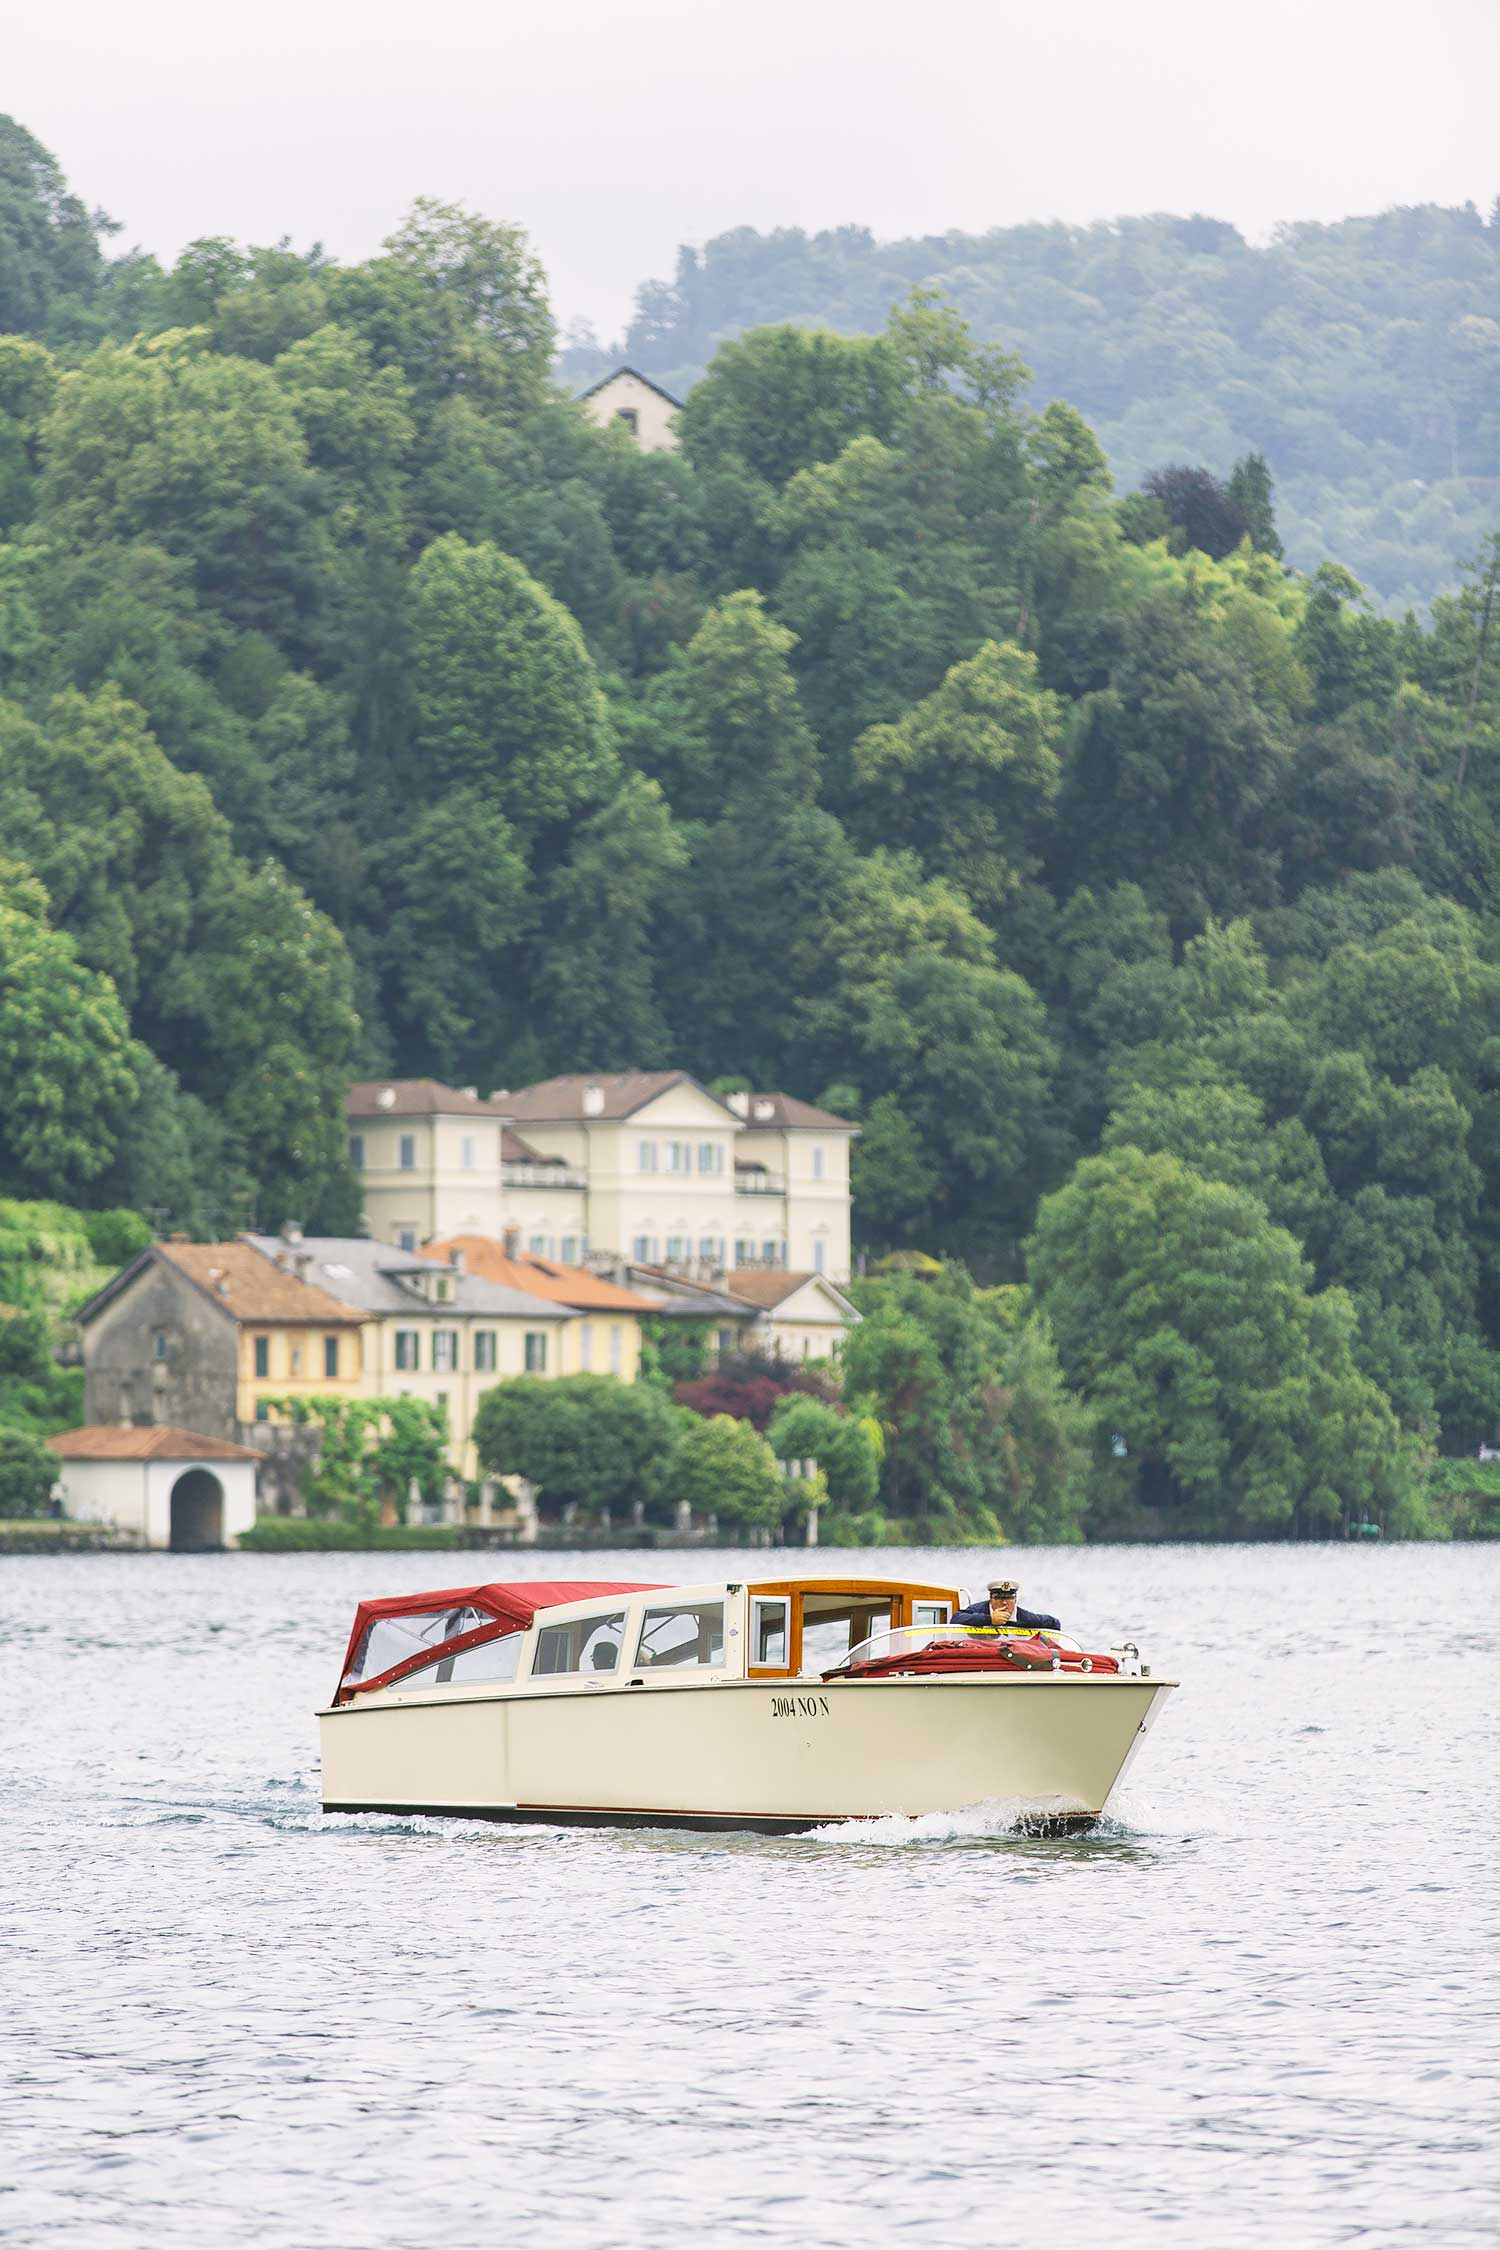 northern italy itinerary covering lake maggiore, lake como, parma, bologna and bergamo